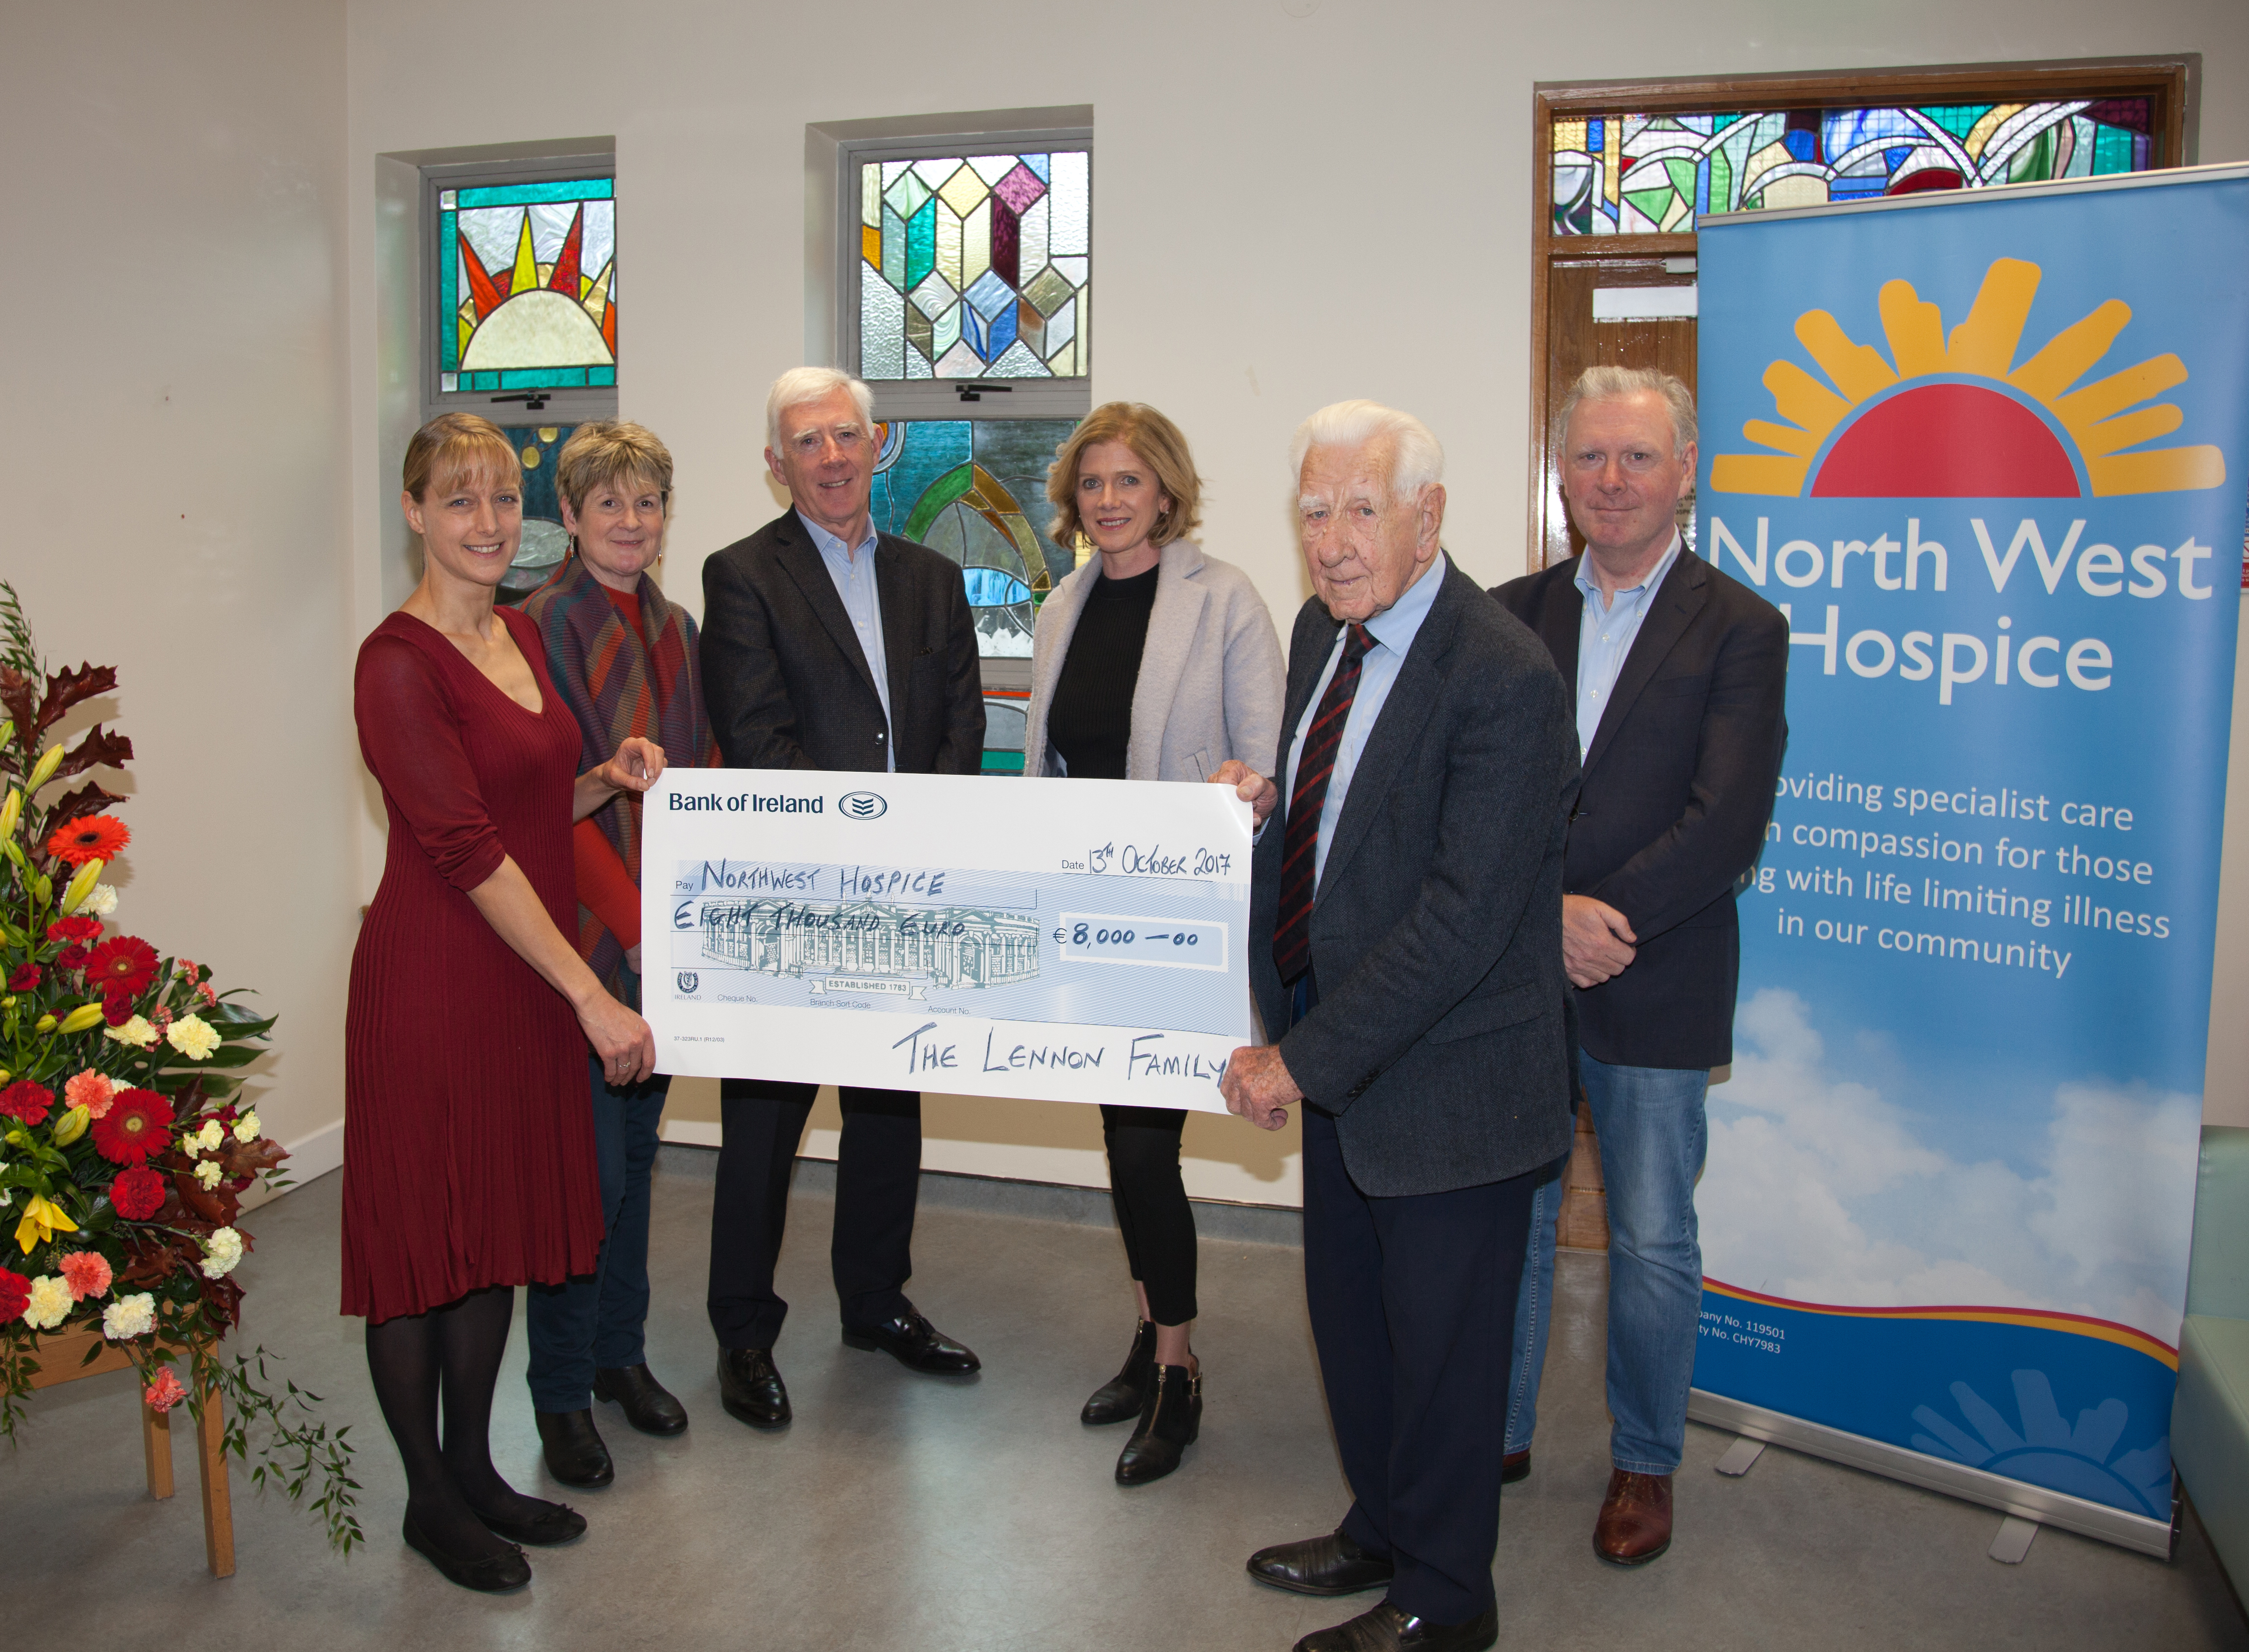 Ben Lennon presenting a cheque to North West Hospice